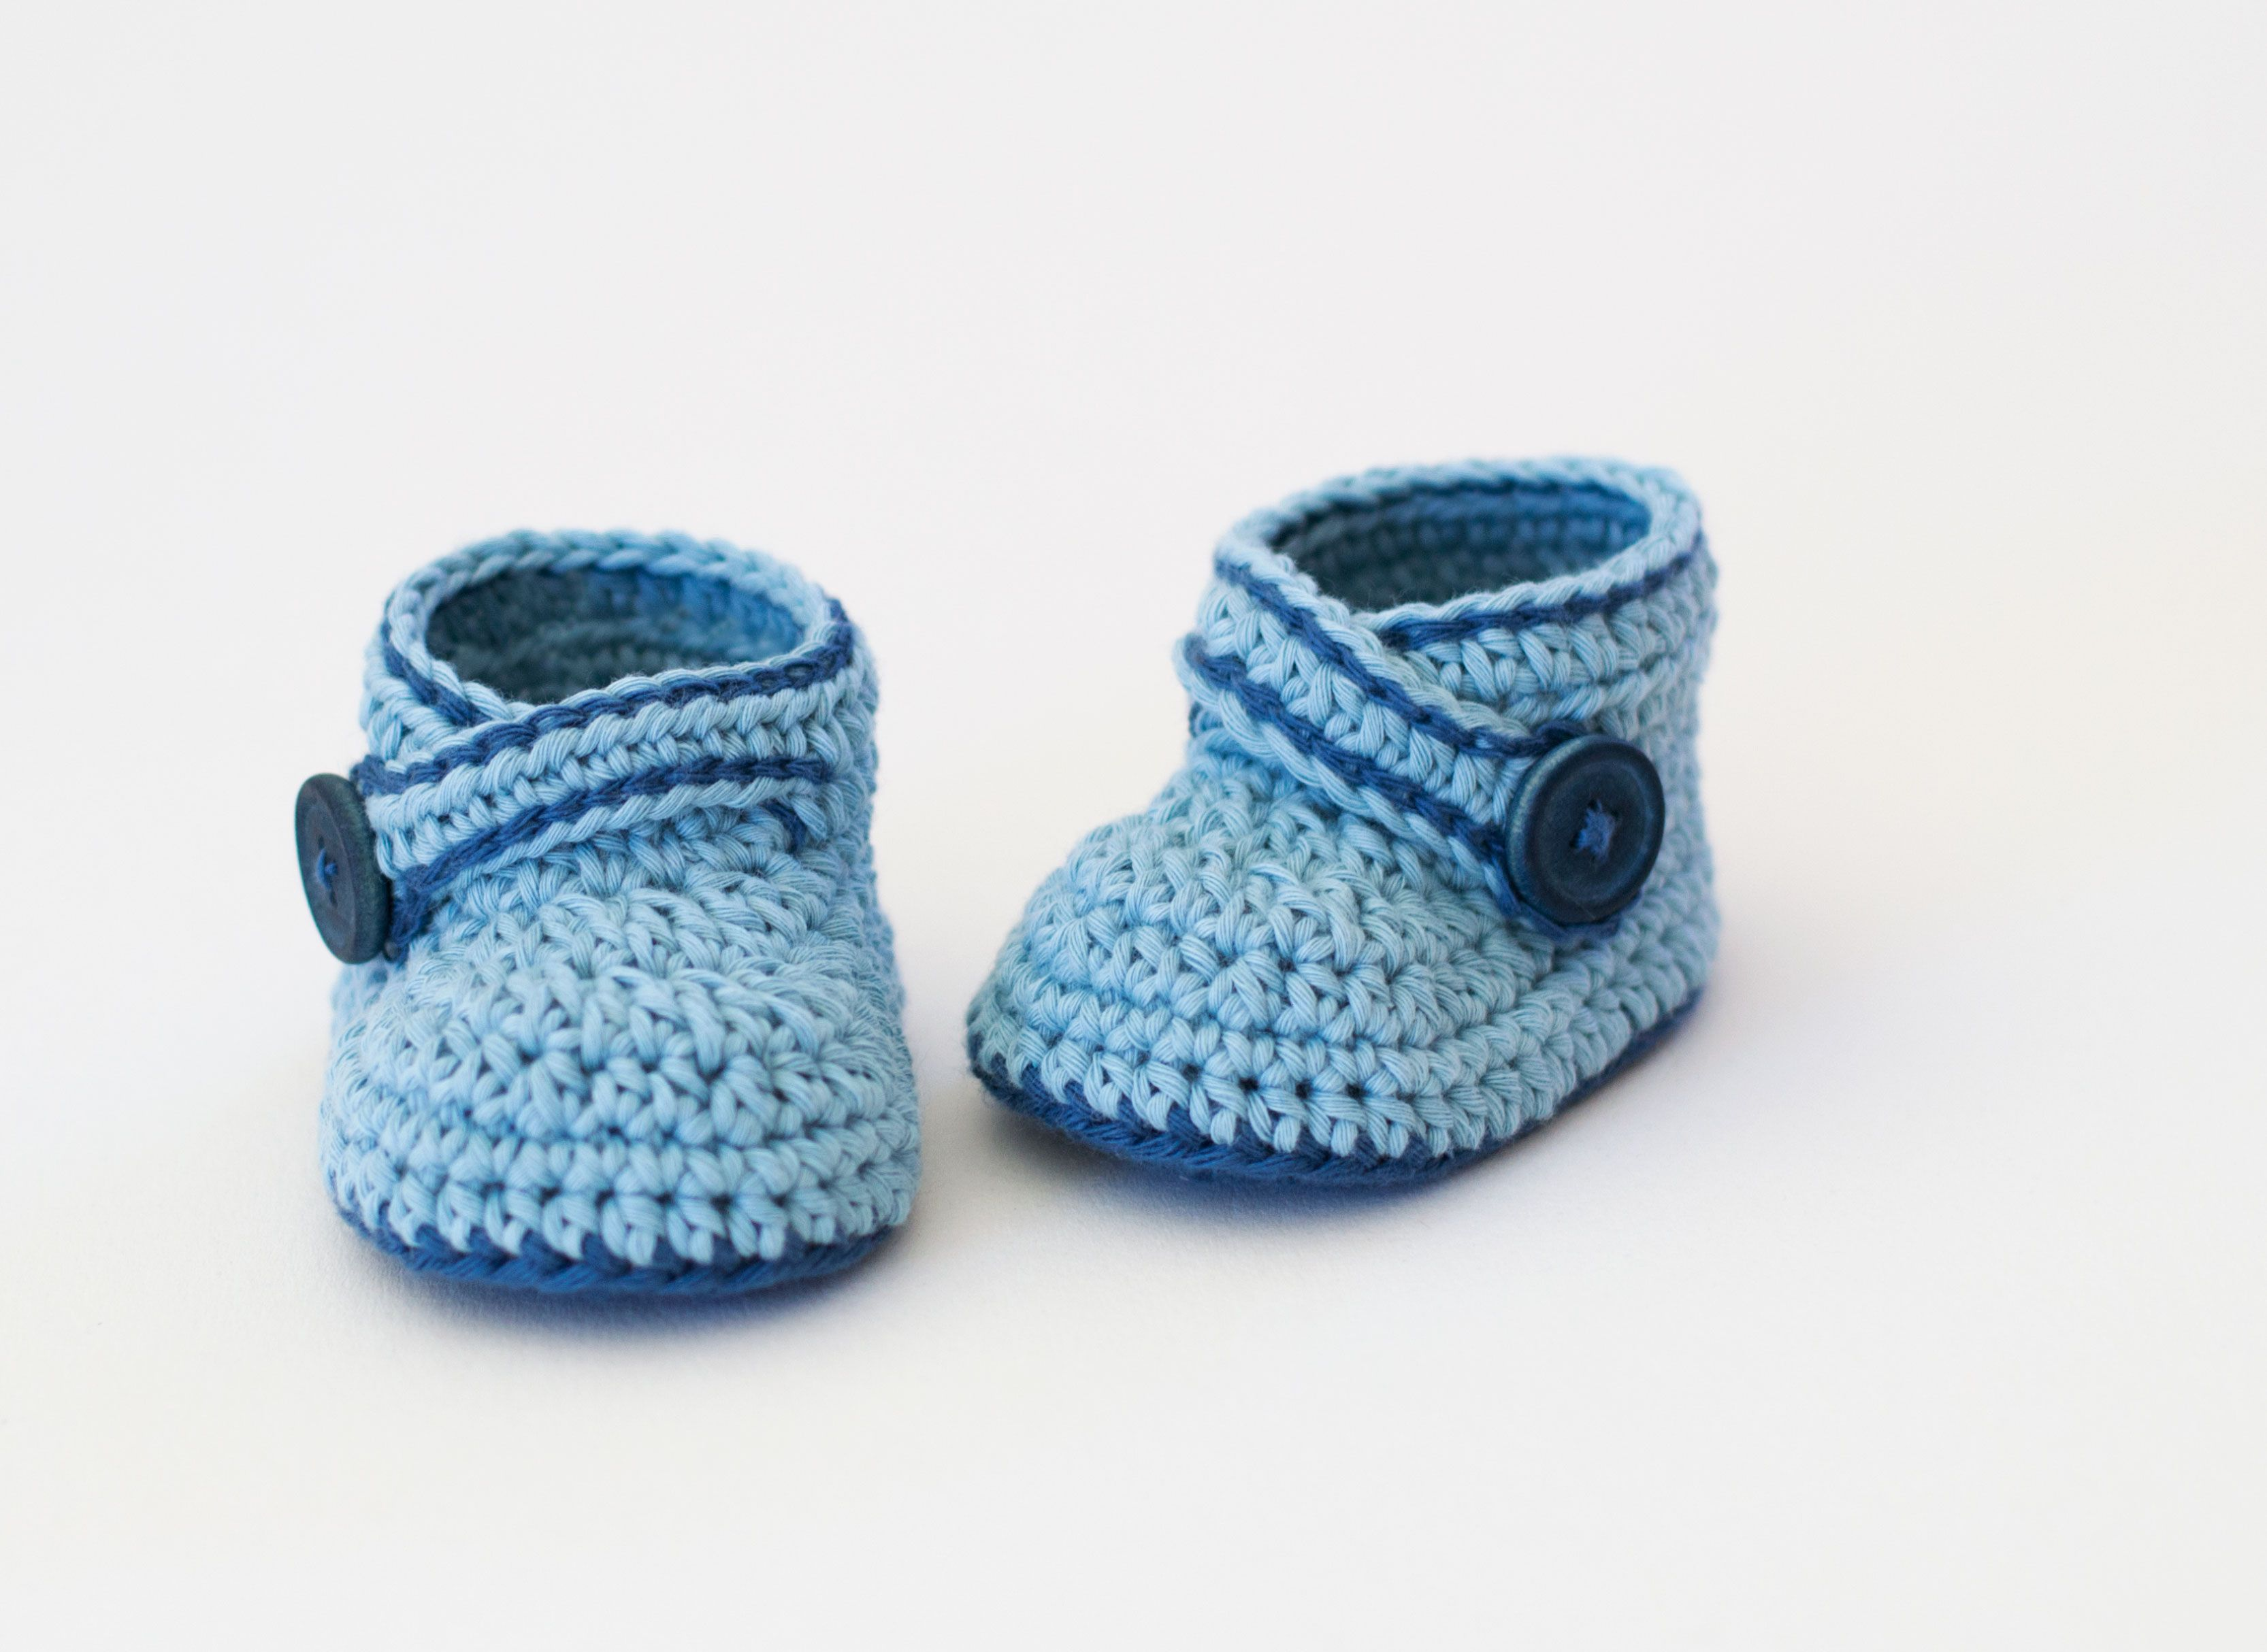 Crochet Baby Booties Blue Whale by Croby Patterns